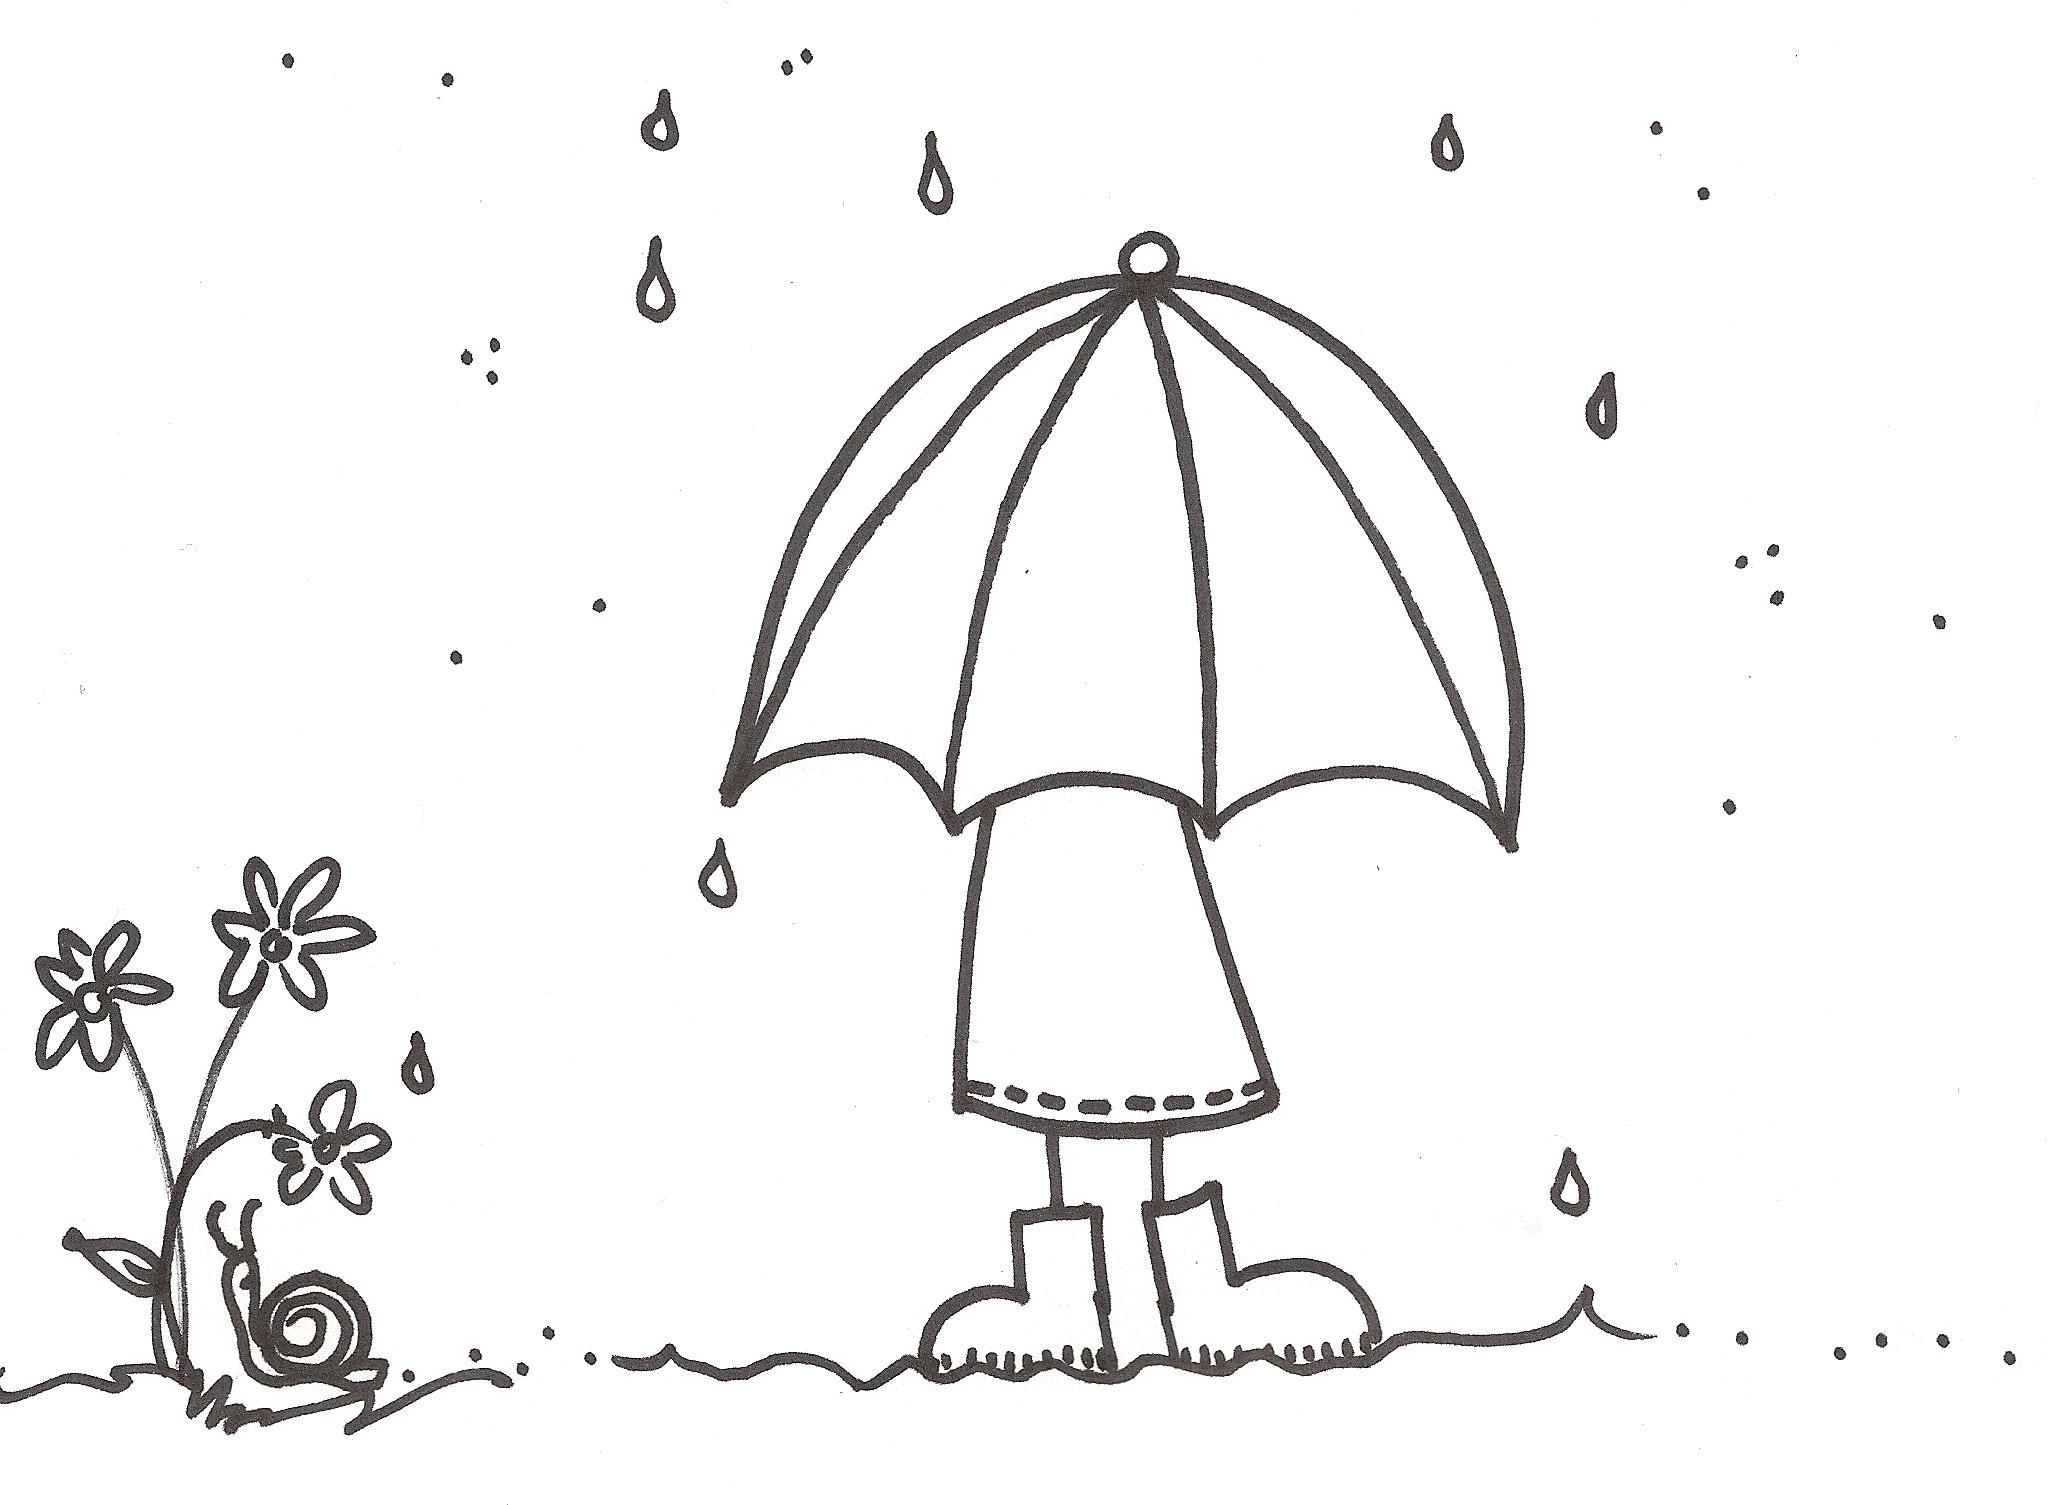 raindrop coloring page 20 pictures colorinenet 23795